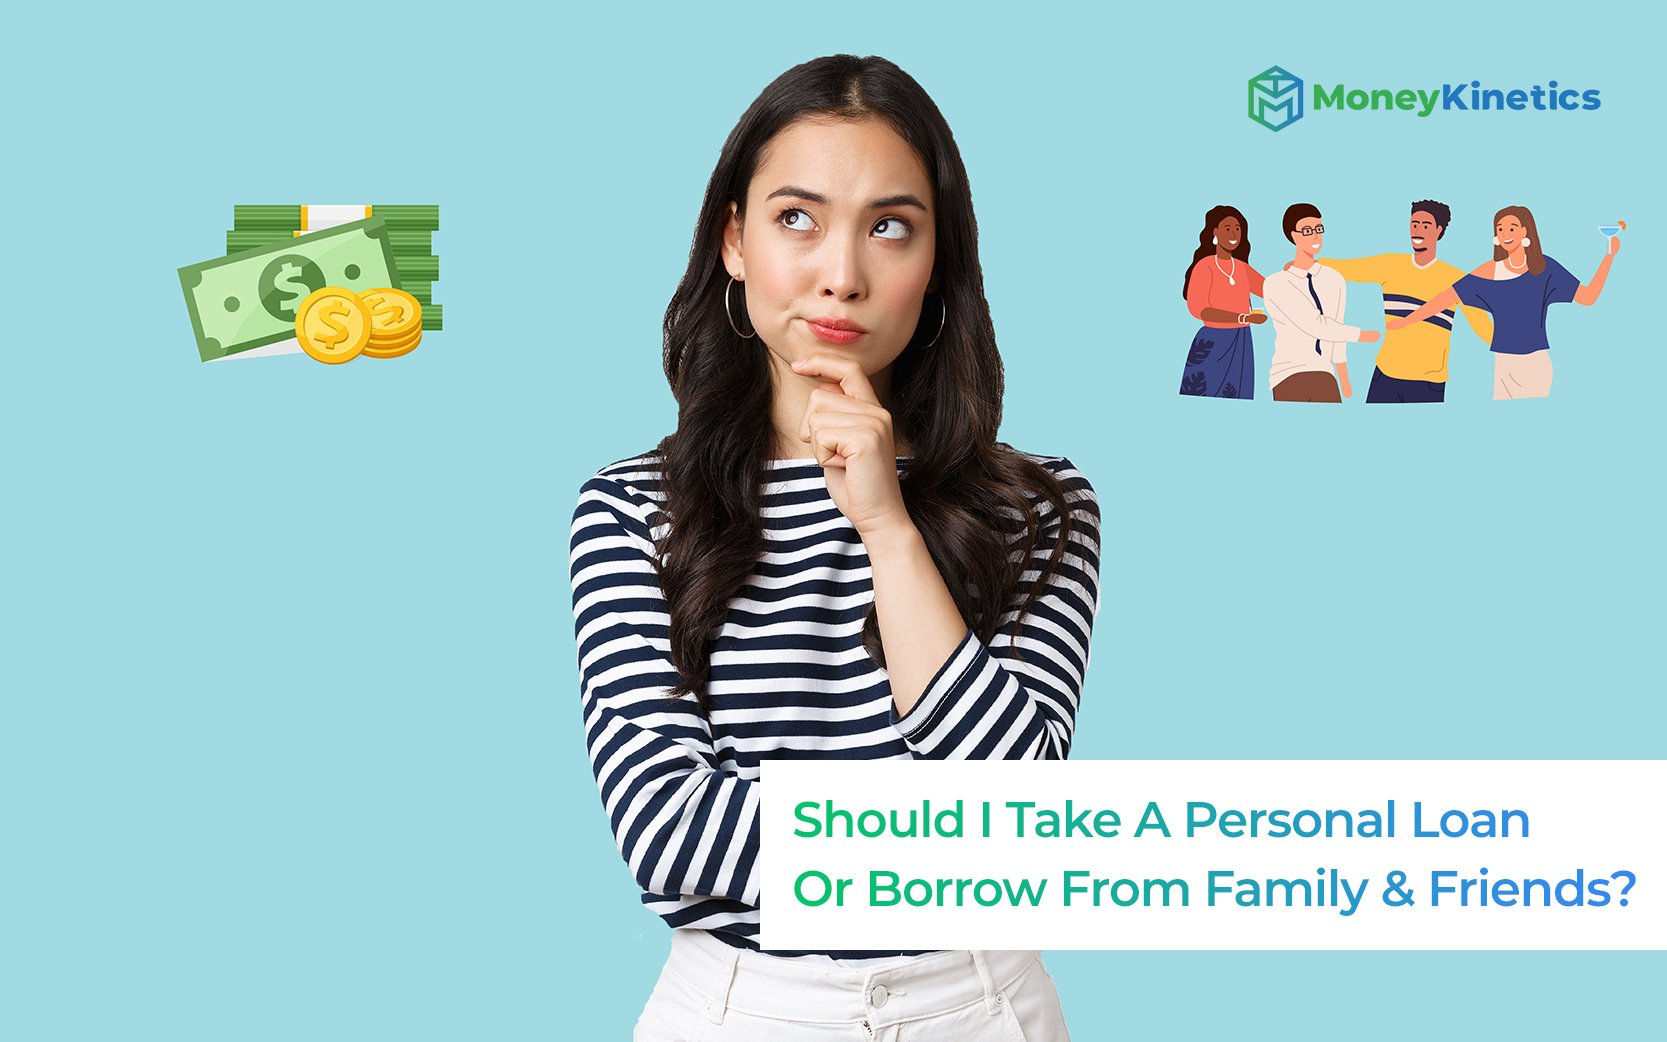 Is It Better To Pay Off A Debt Using A Personal Loan Or Borrow From Family & Friends?